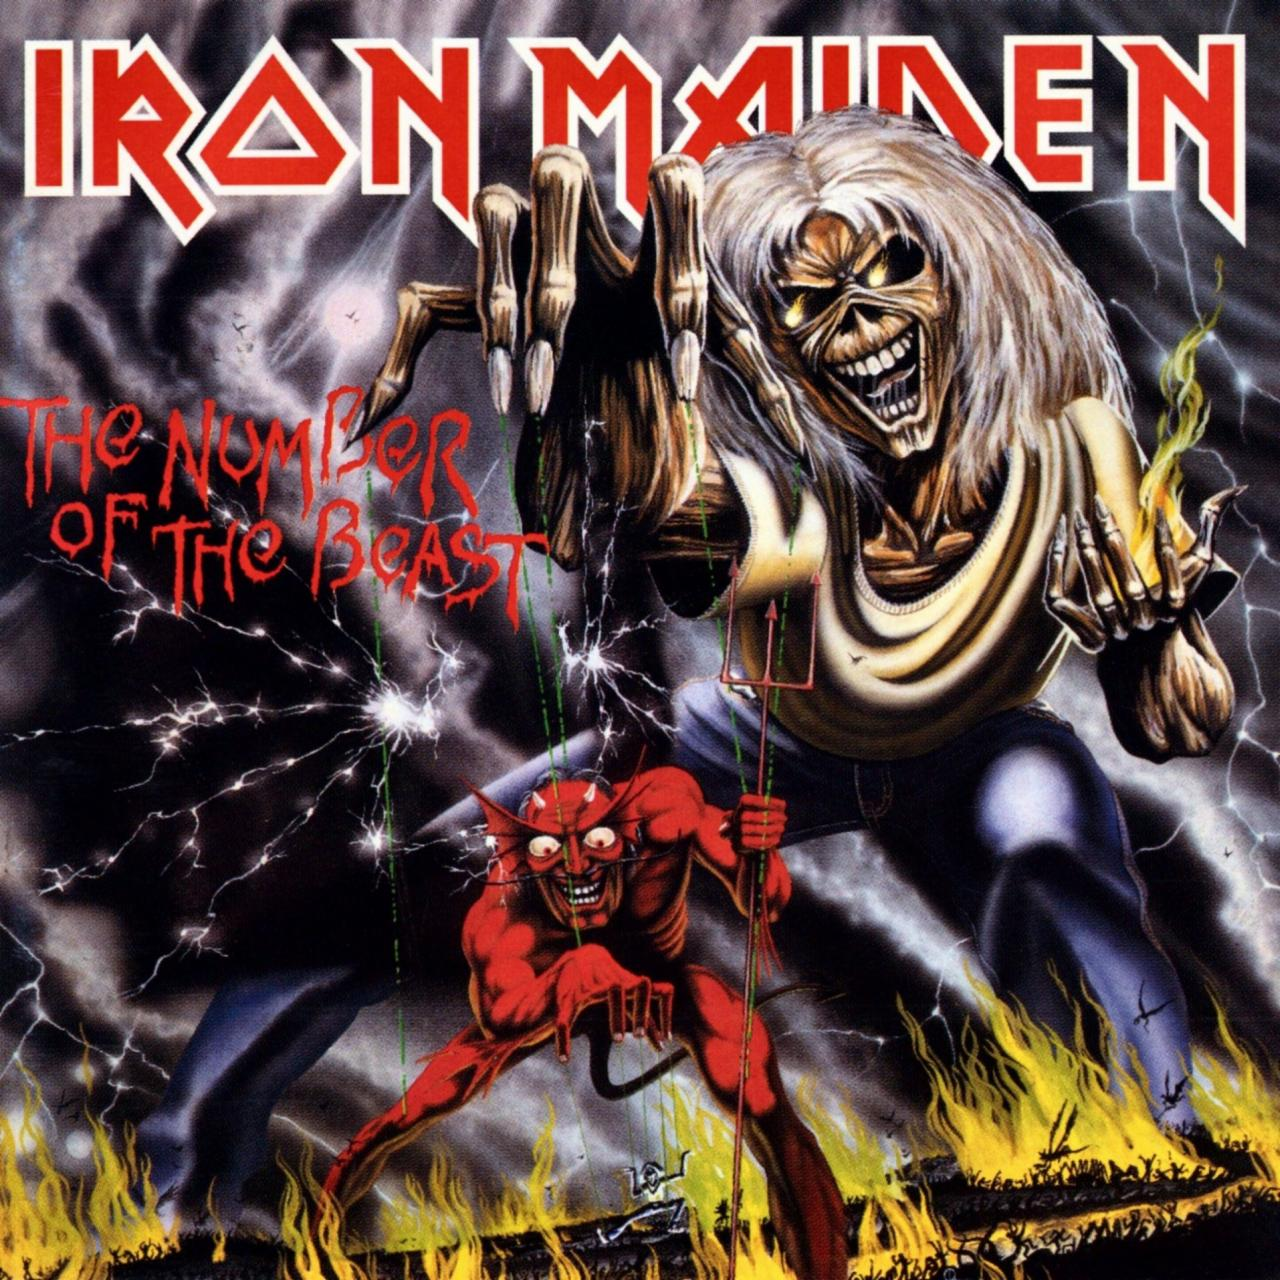 Iron Maiden - Iron Maiden Lyrics